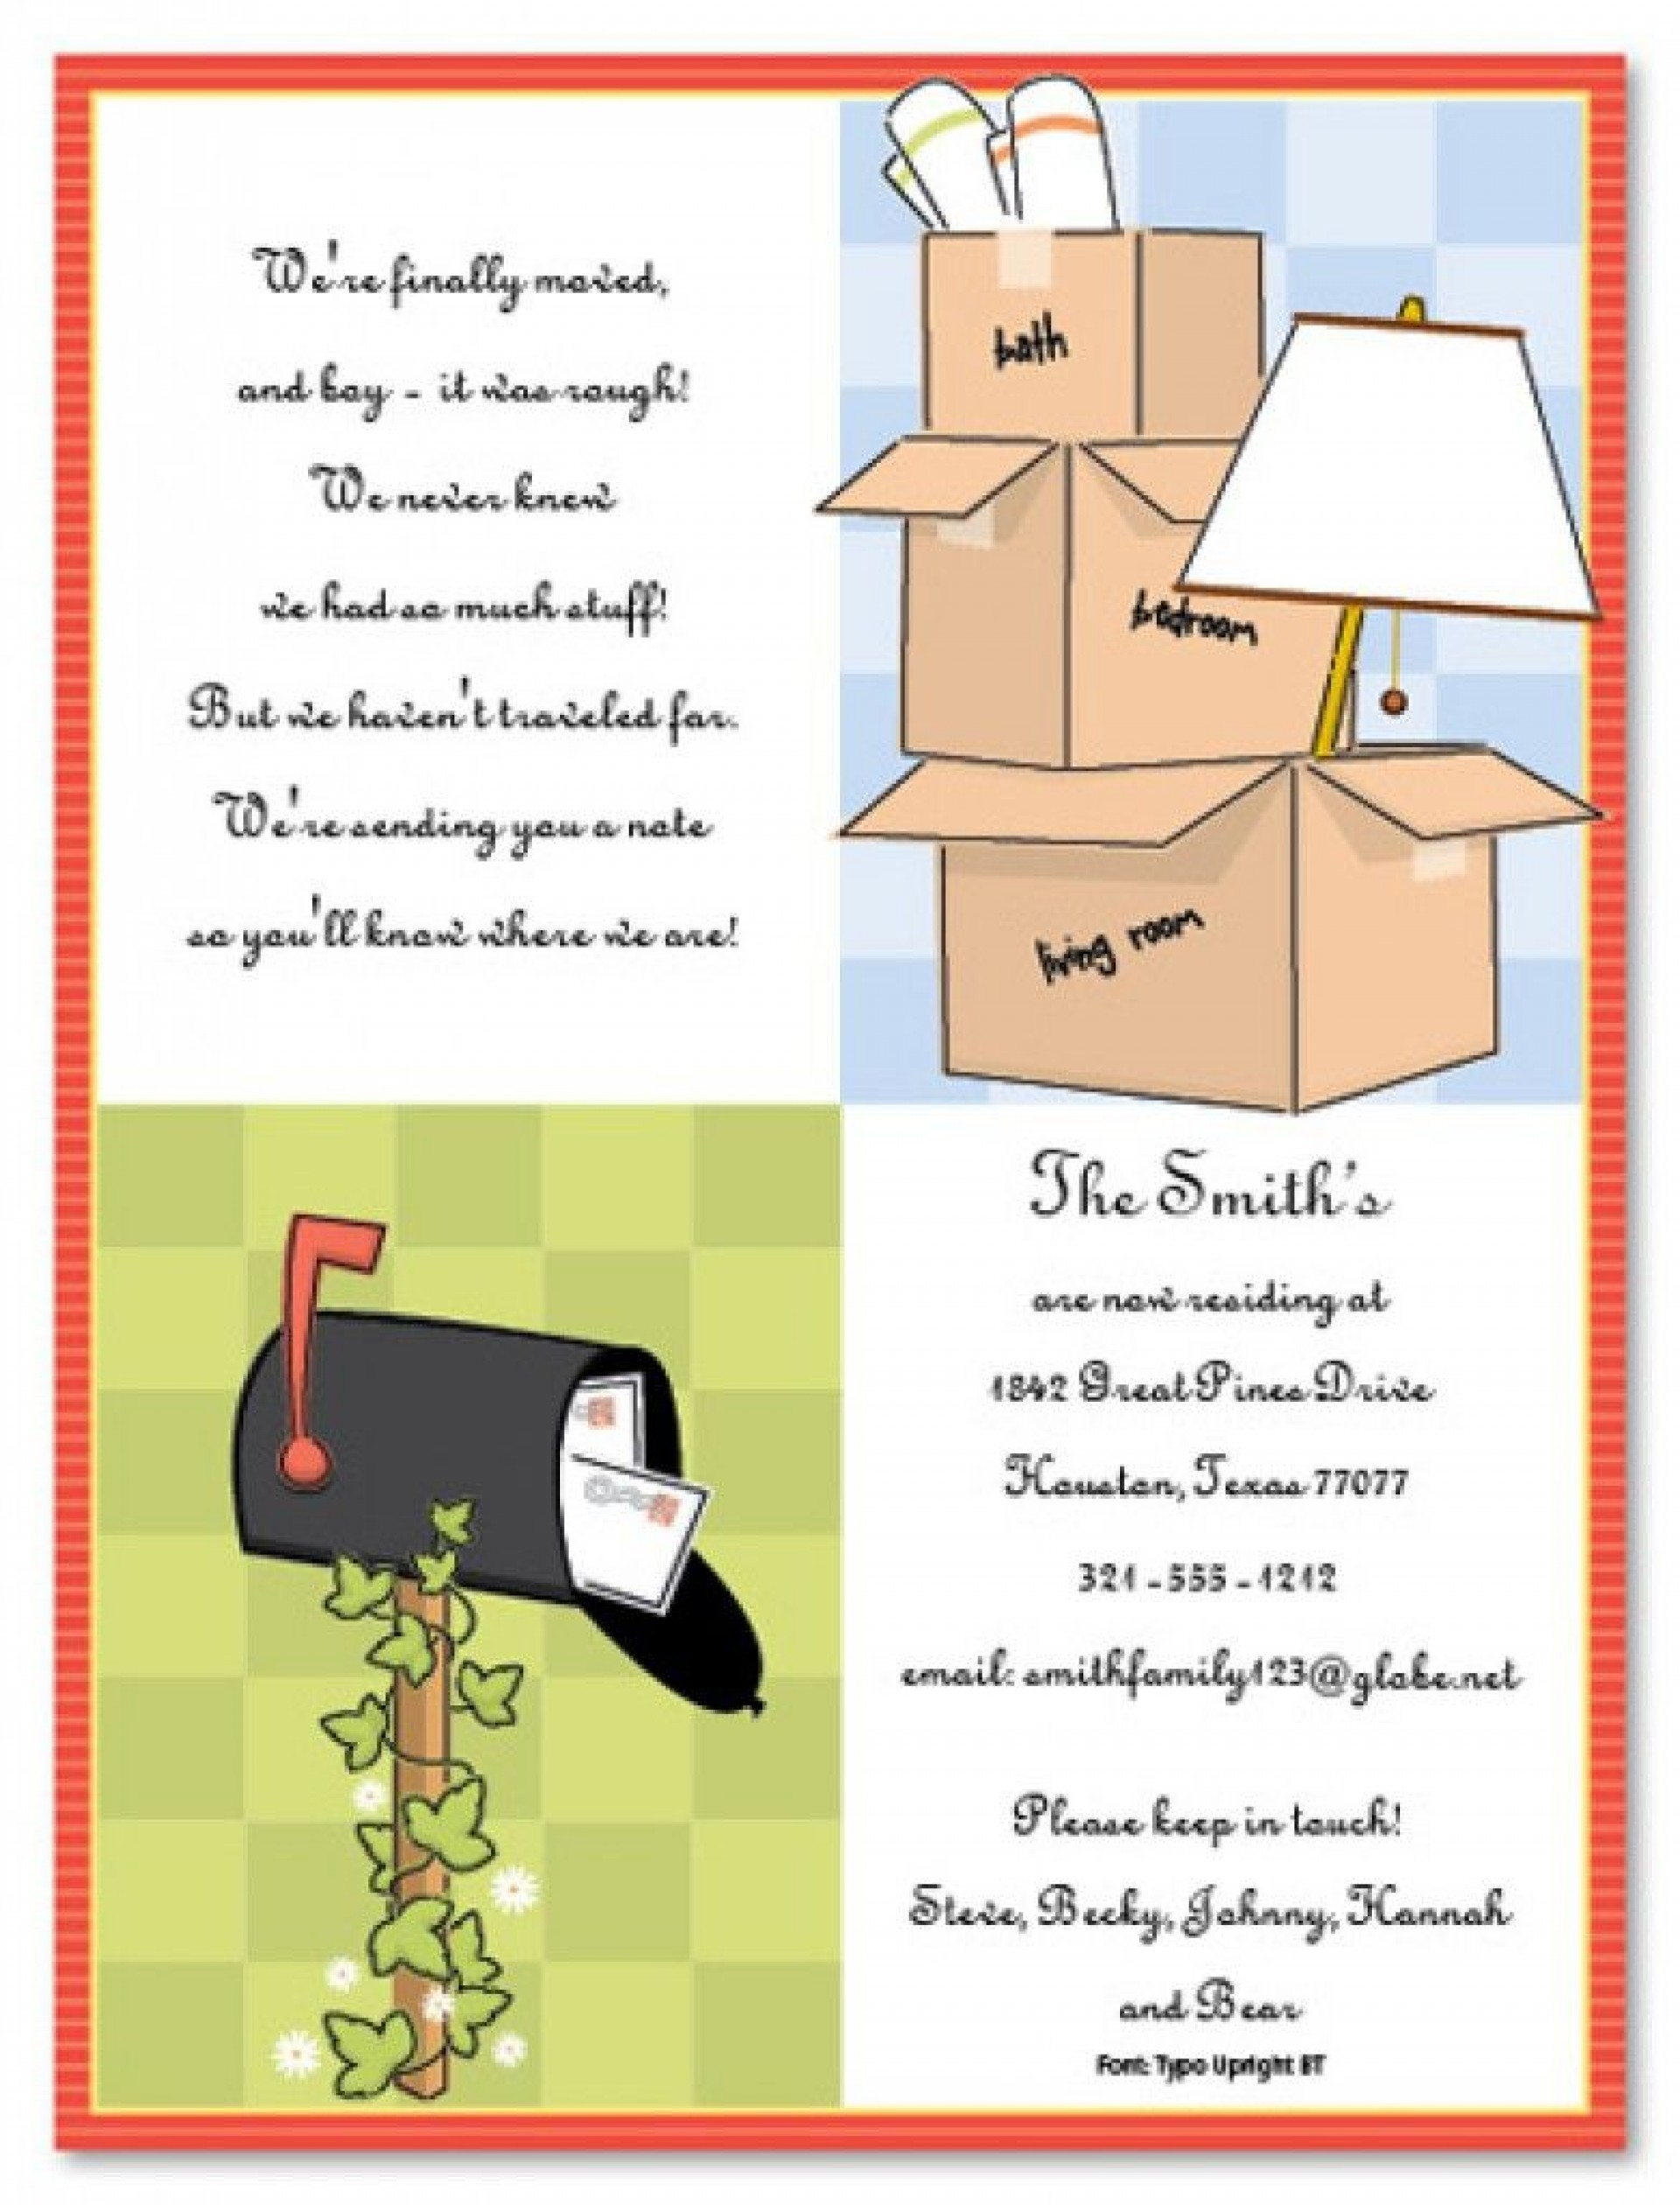 006 Astounding Housewarming Party Invitation Template High Definition  Templates Free Download Card1920